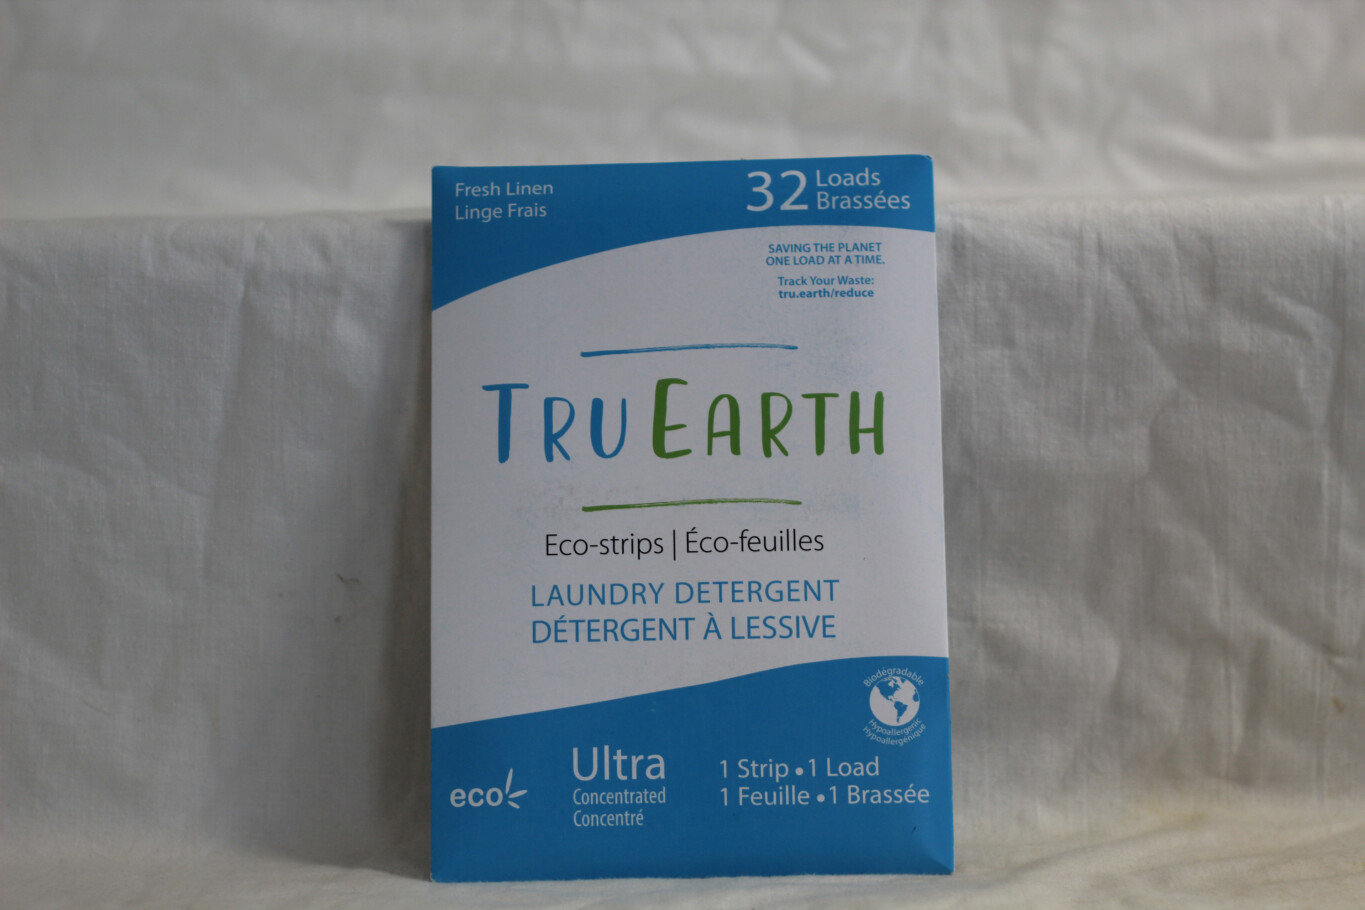 TruEarth Laundry Detergent Eco-Strips